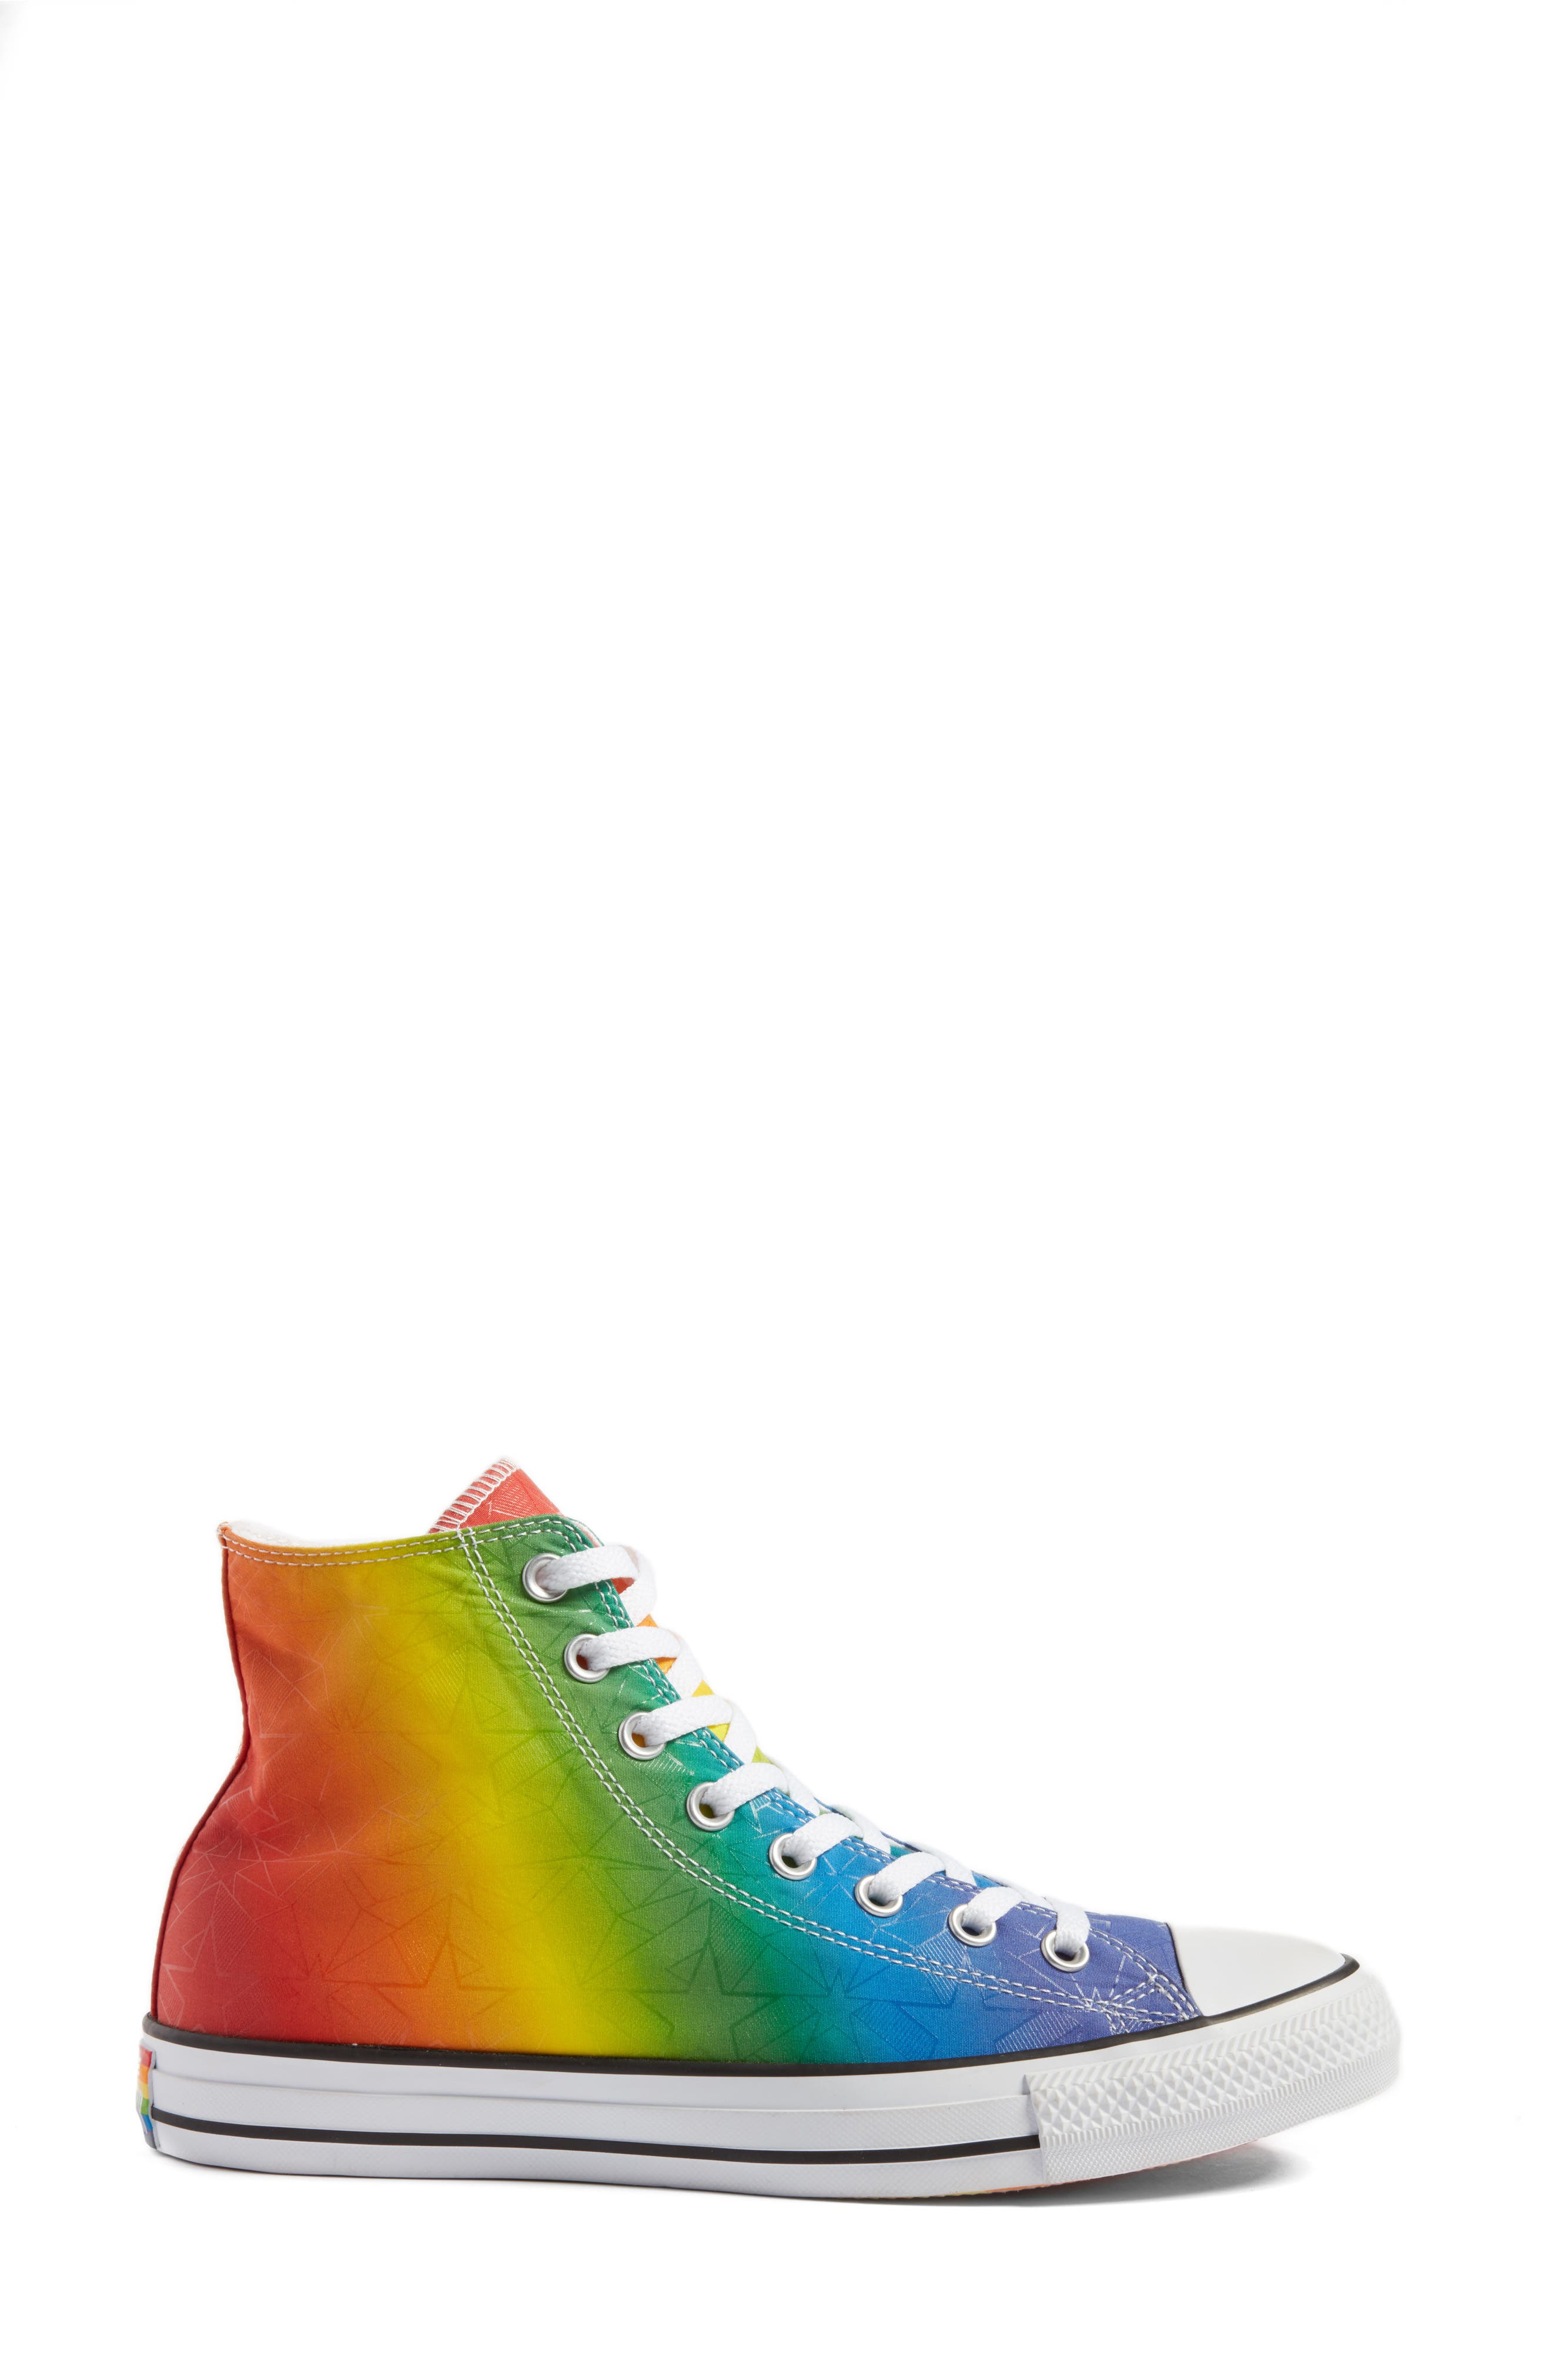 Chuck Taylor<sup>®</sup> All Star<sup>®</sup> Pride High Top Sneaker,                             Alternate thumbnail 3, color,                             Purple